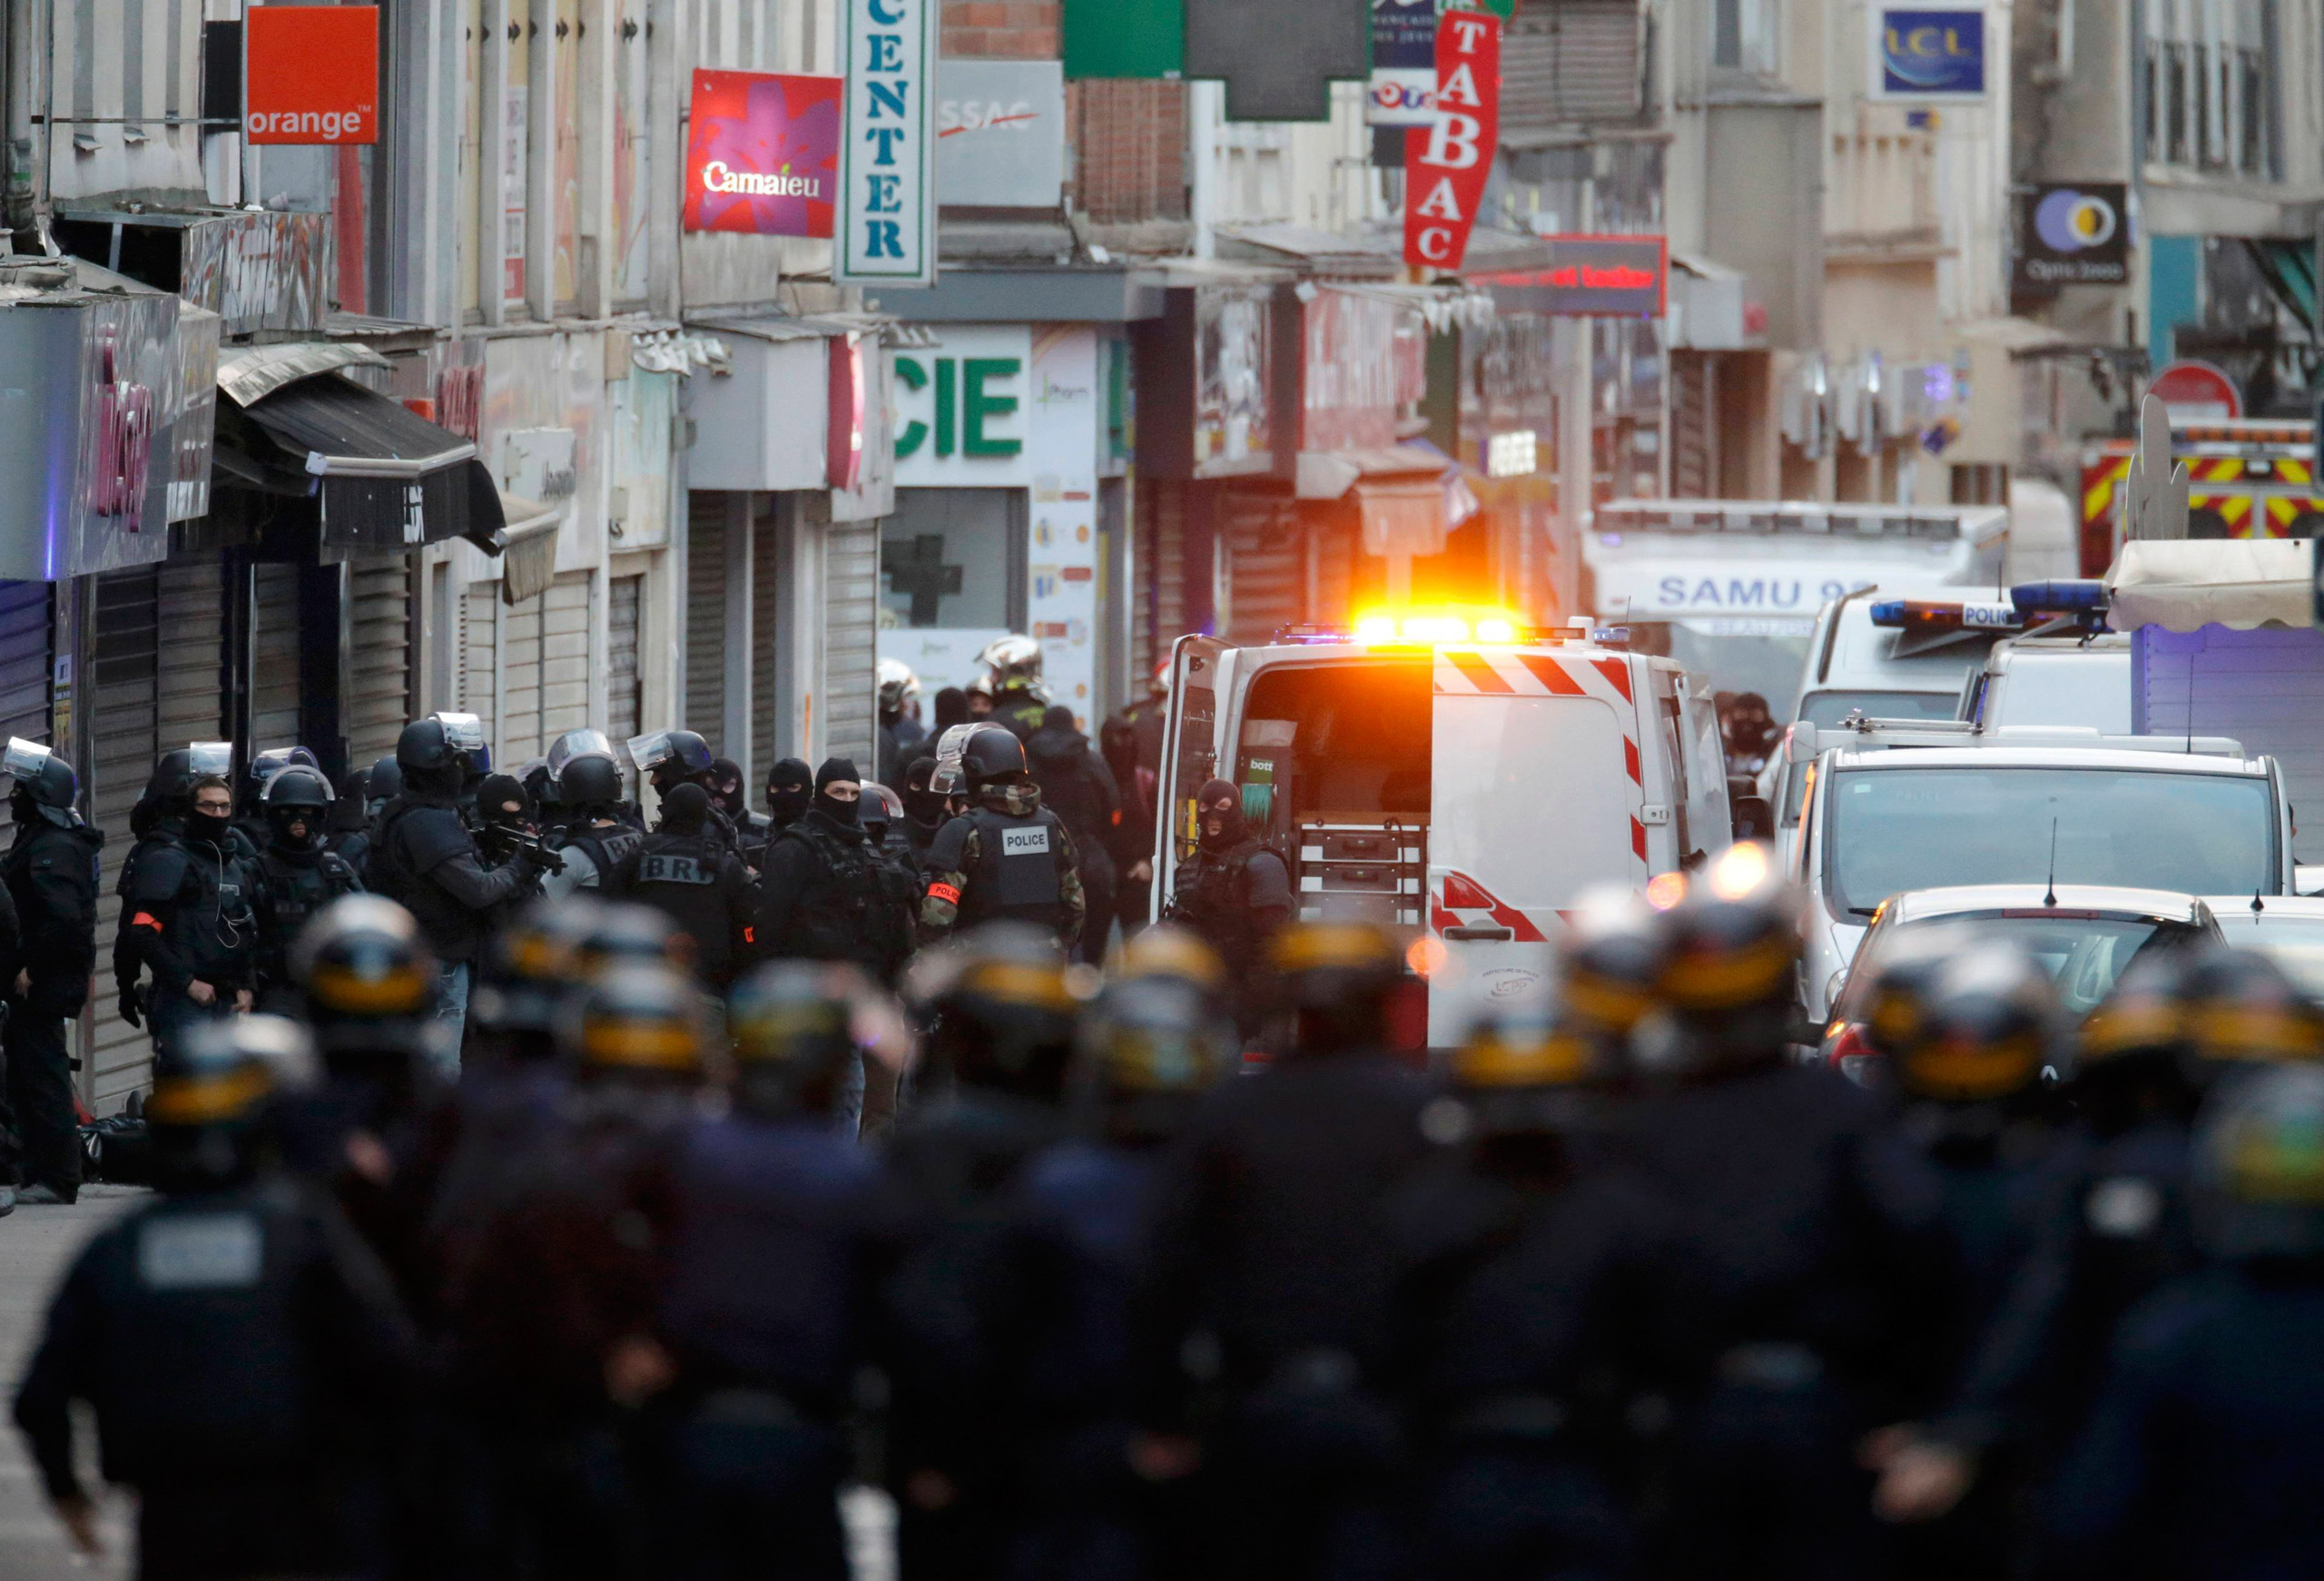 French special police forces secure the area as shots are exchanged during an operation to catch fugitives from Friday night's deadly attacks in Saint-Denis, outside of Paris, on Nov. 18, 2015.